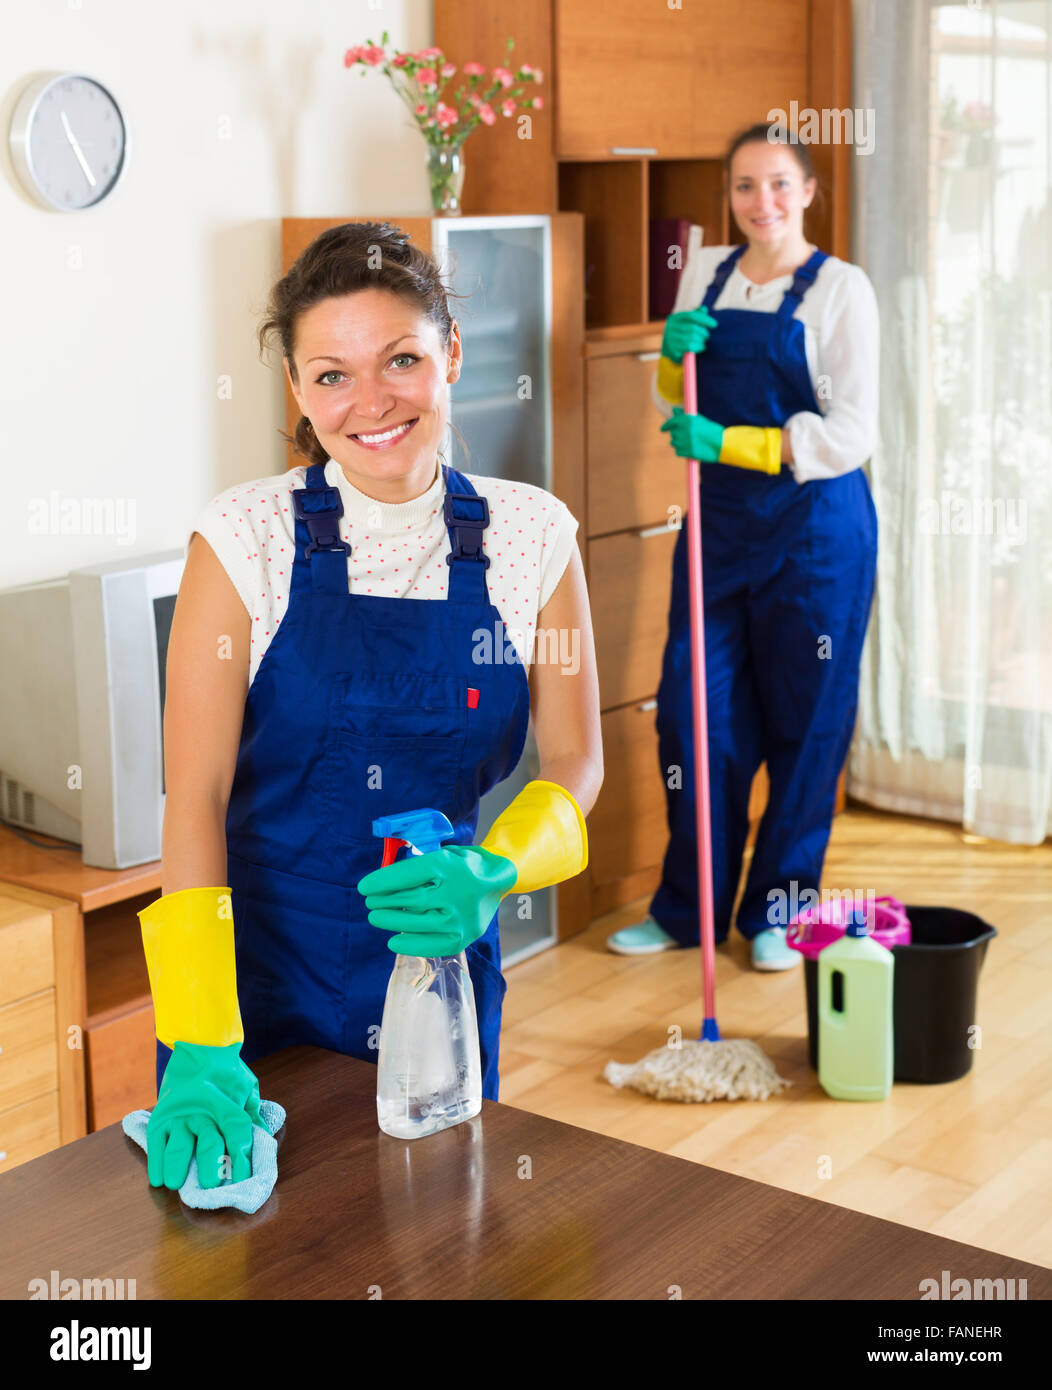 Exceptionnel Smiling Professional Cleaners Washing Apartment With Rag And Mop